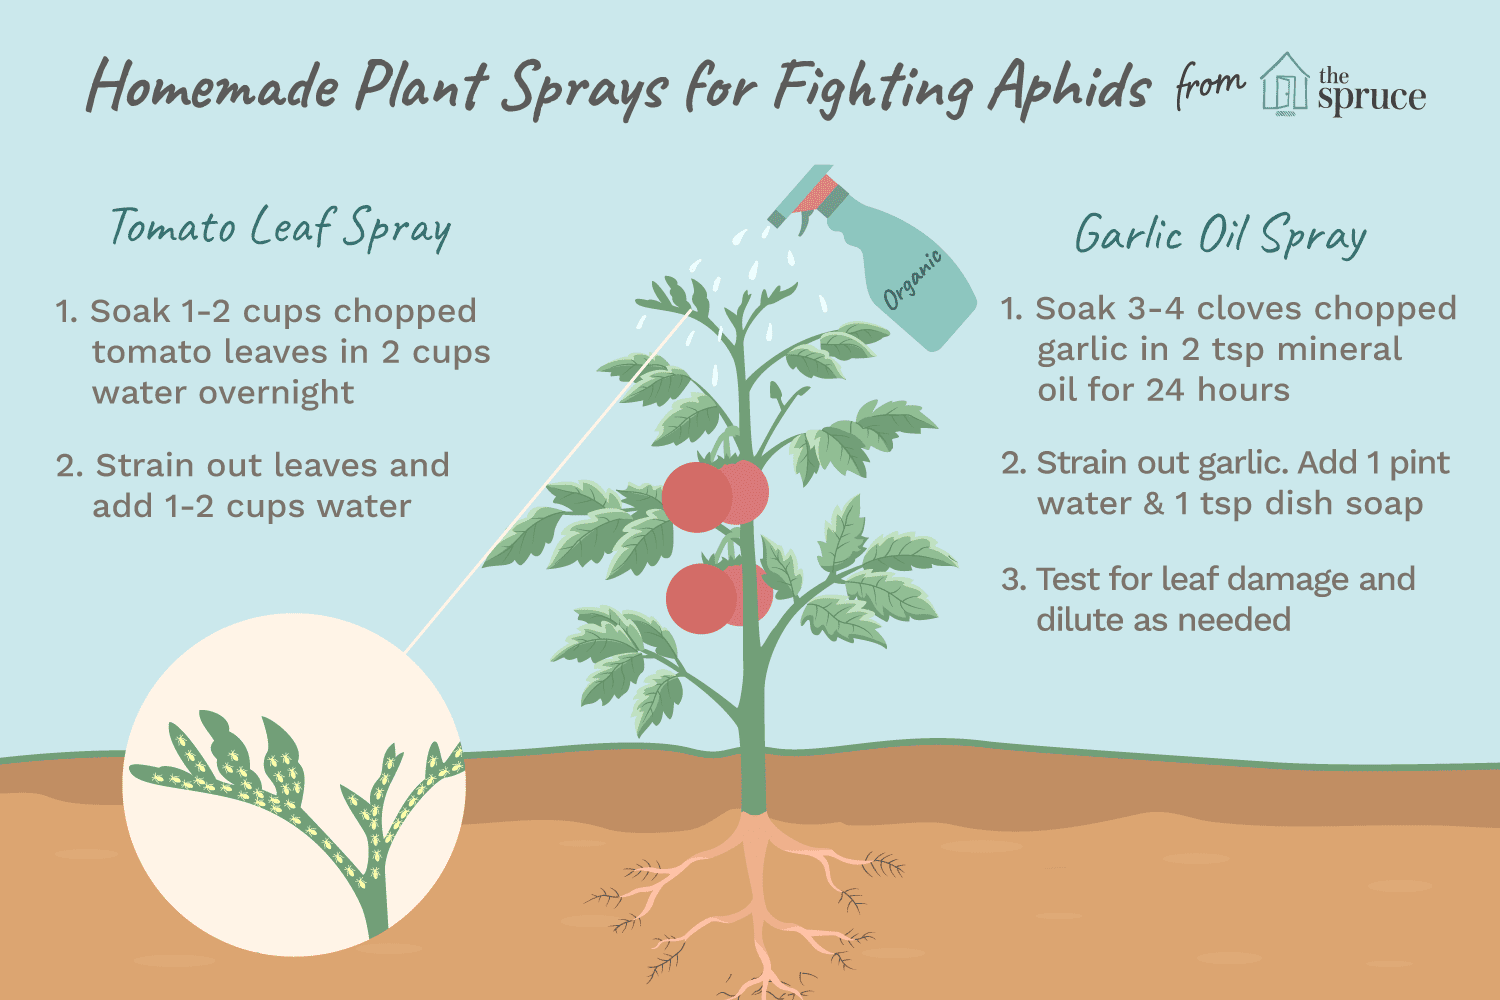 Homemade Organic Sprays for Fighting Aphids